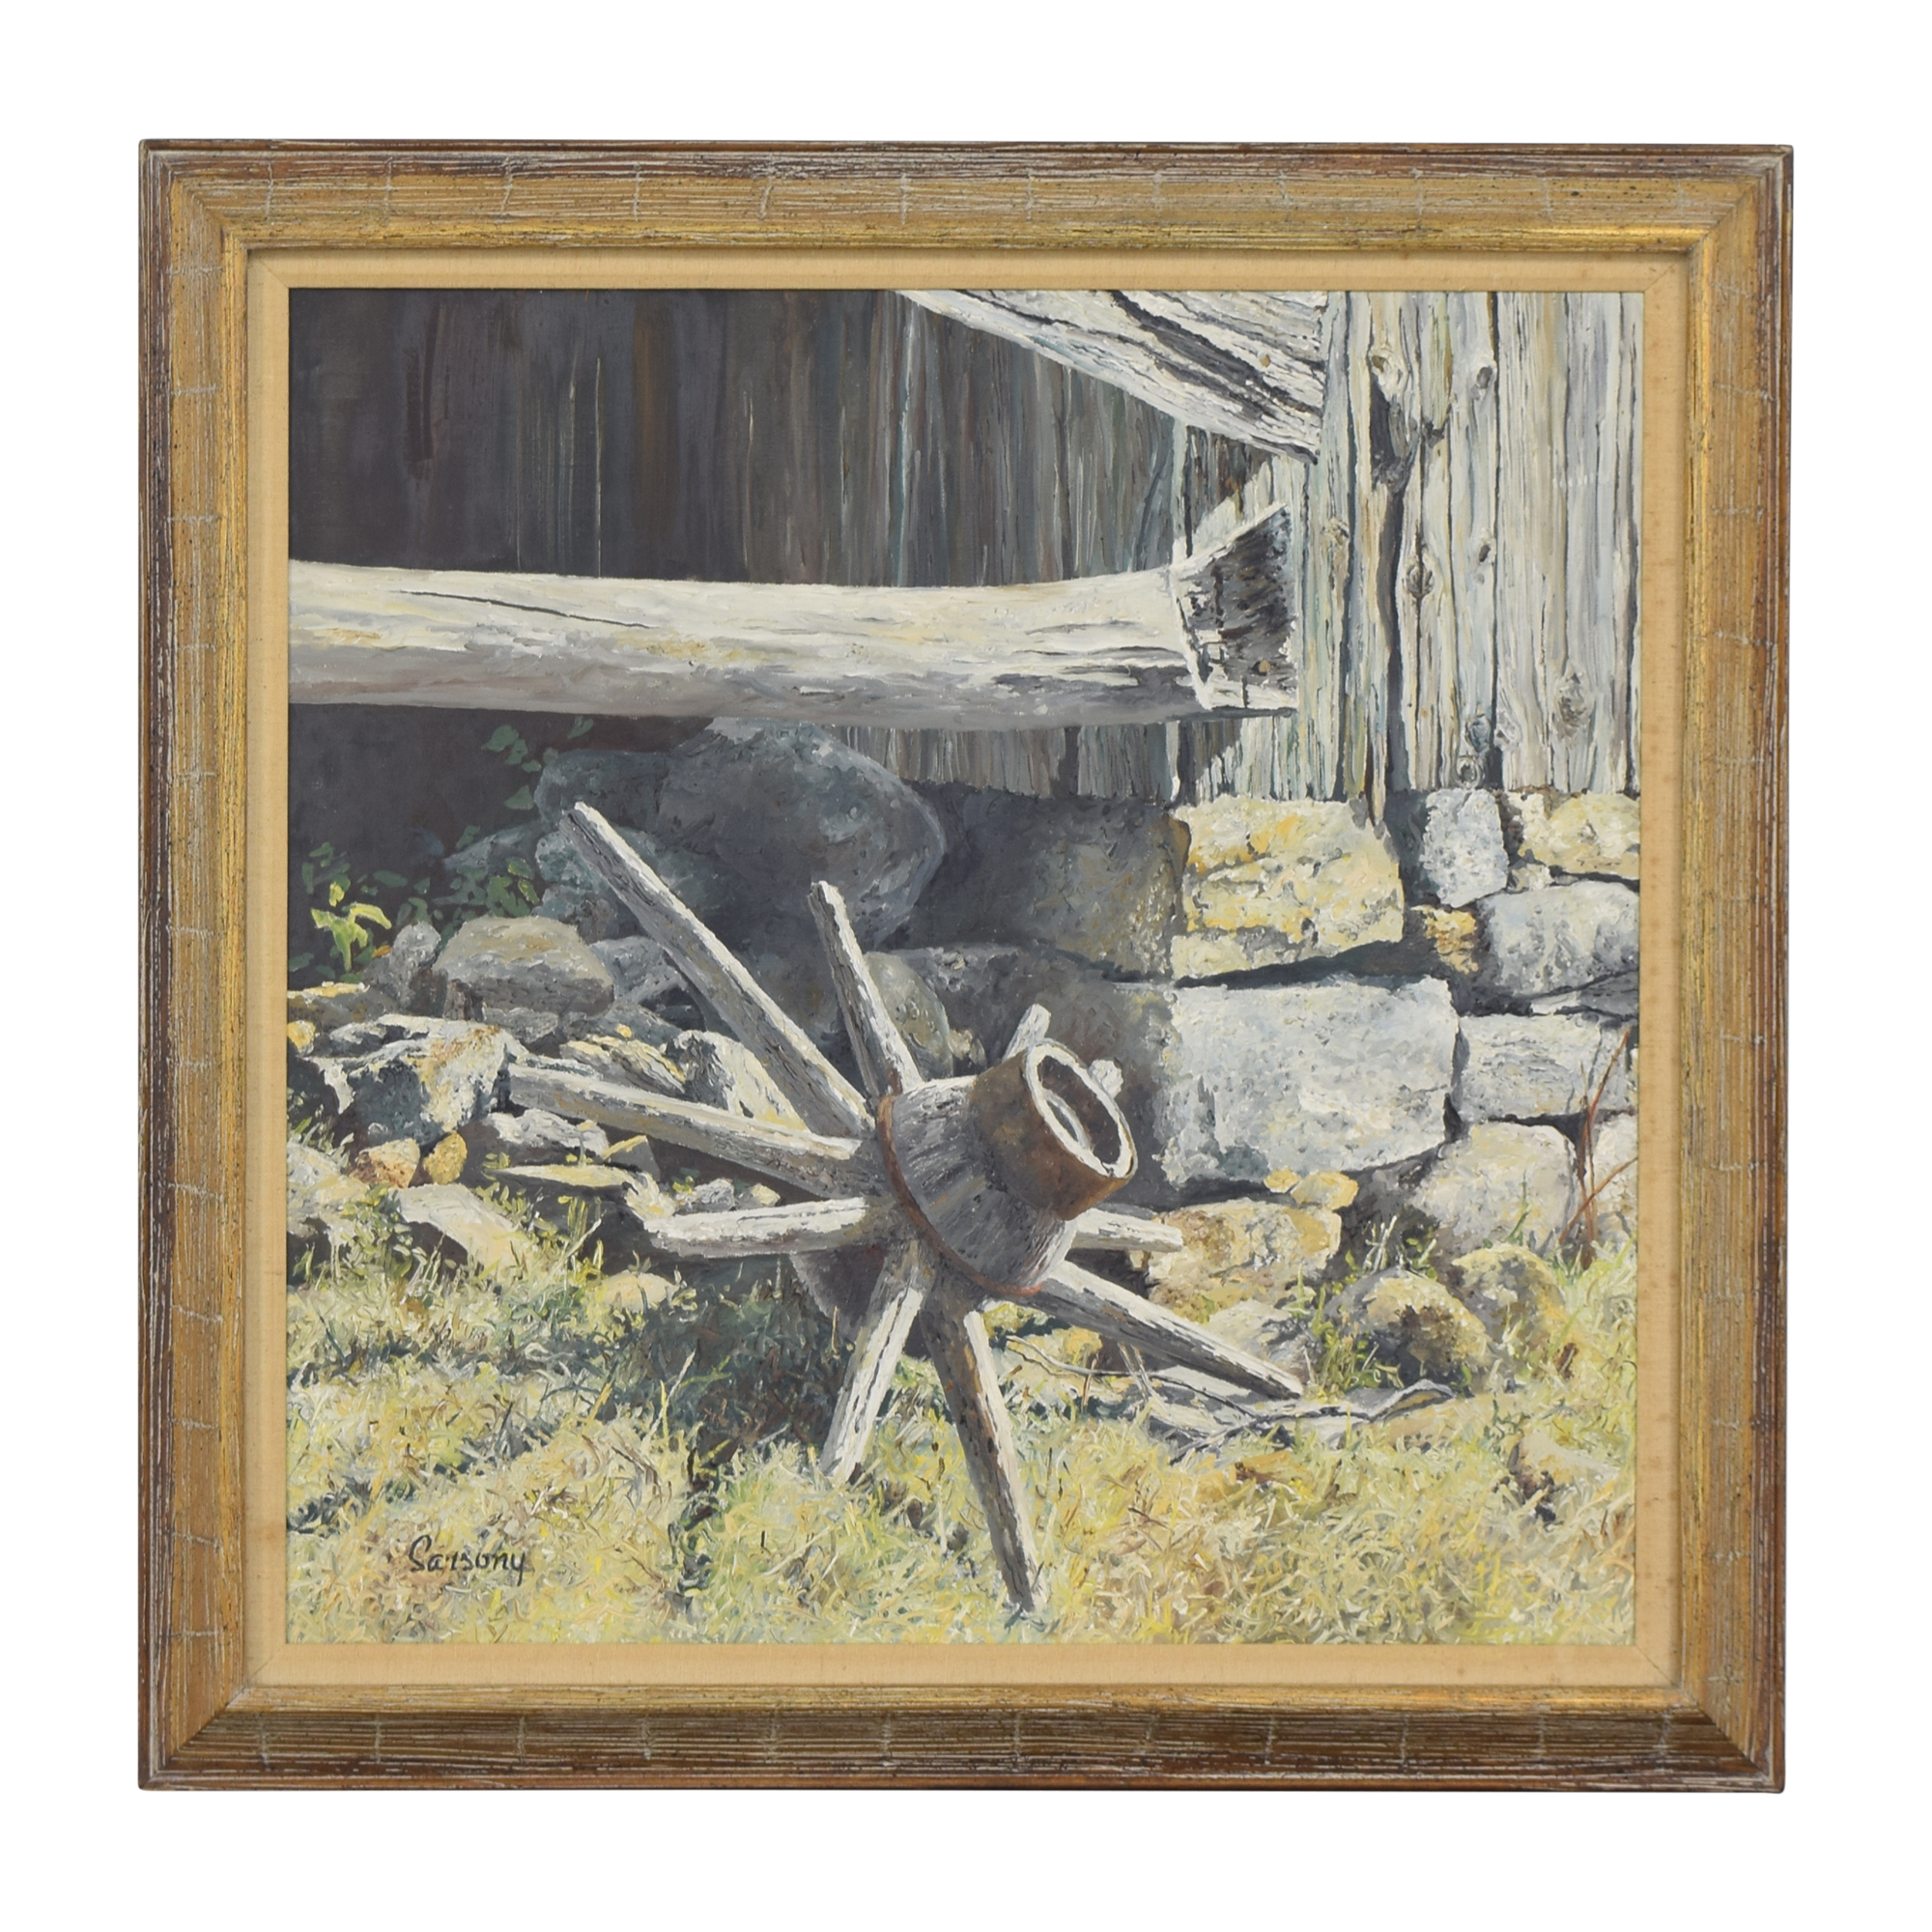 Robert Sarsony Wheel at the Barn Corner Framed Wall Art / Wall Art